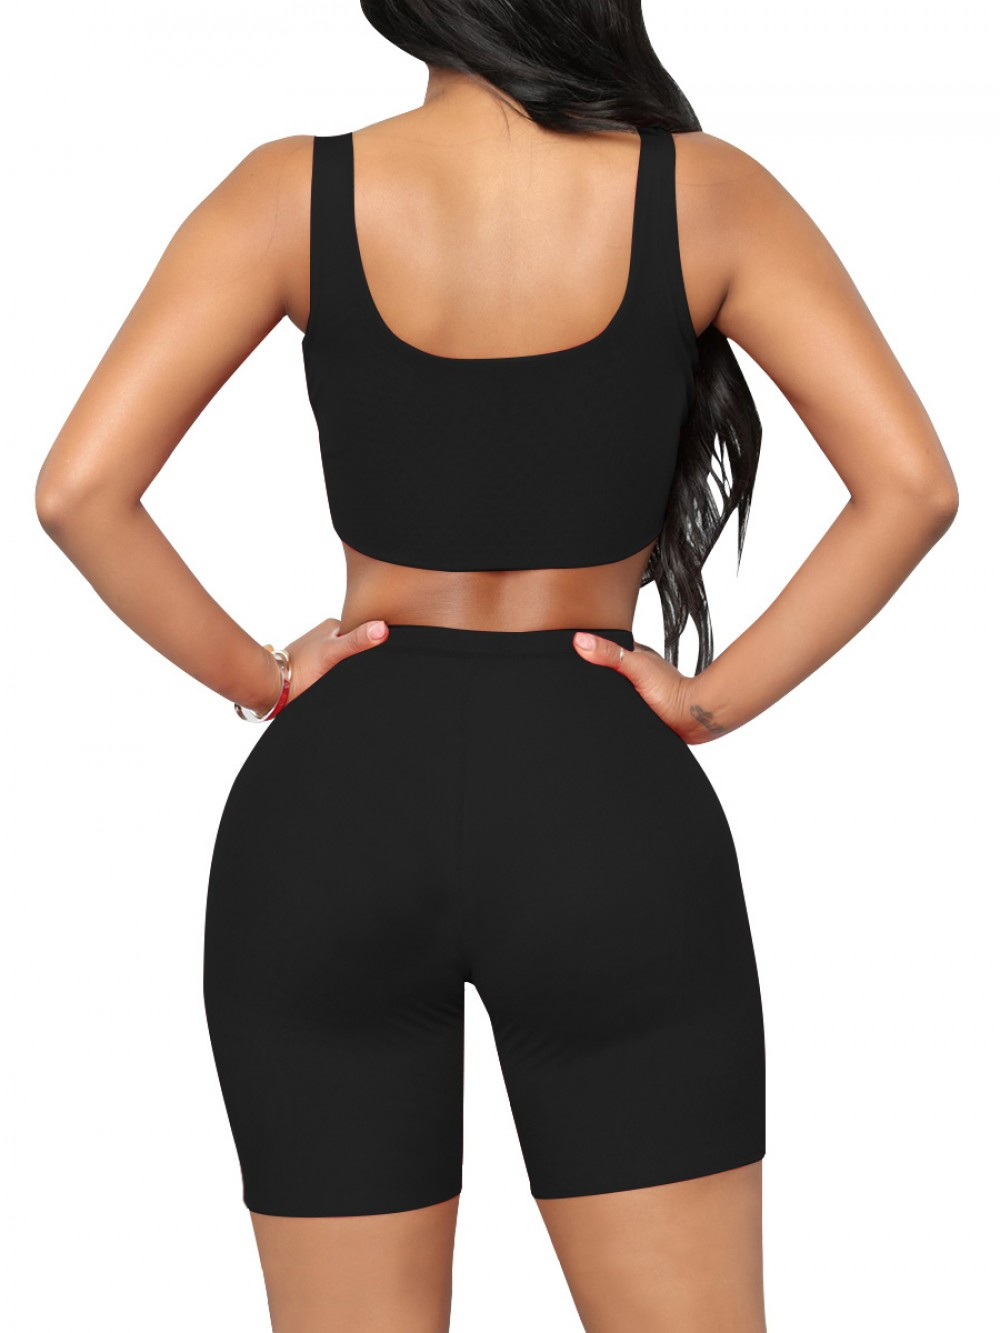 Upgrade Black Training Suits High Waist Scoop Neck Slimming Fit